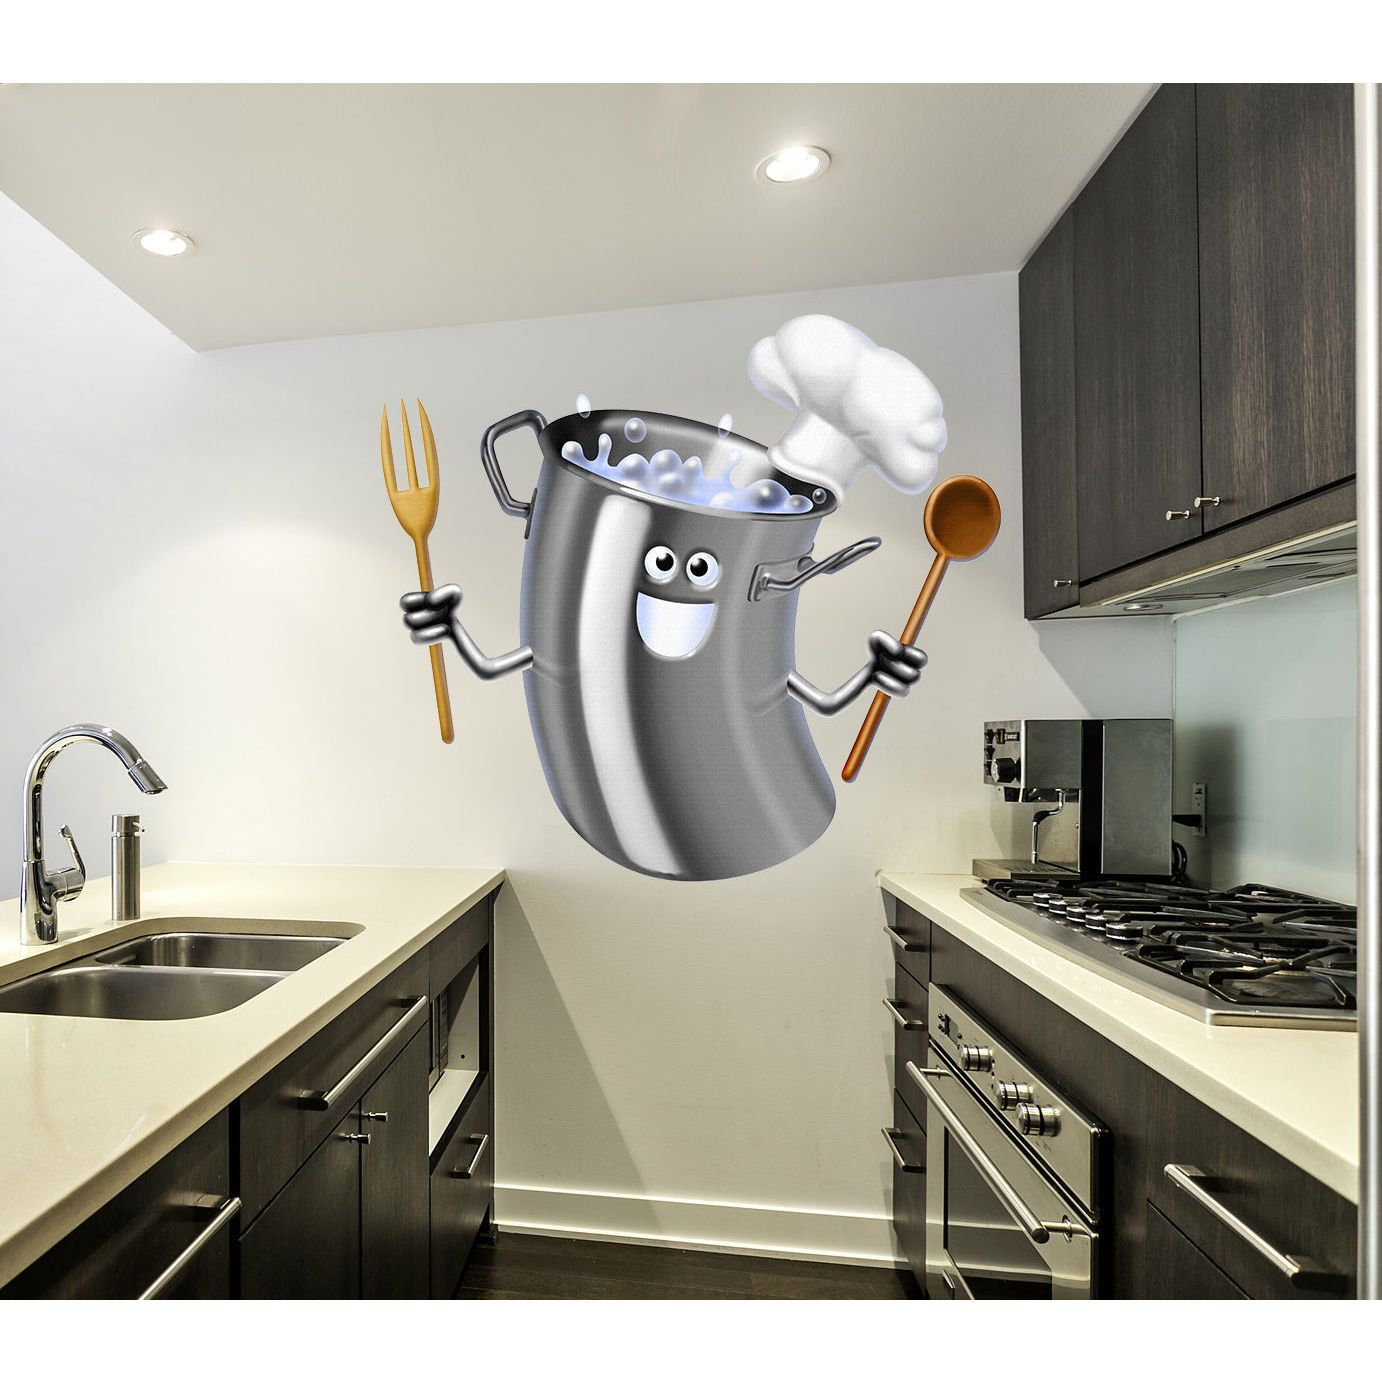 Full color decal funny pan sticker colored funny pan wall art decal